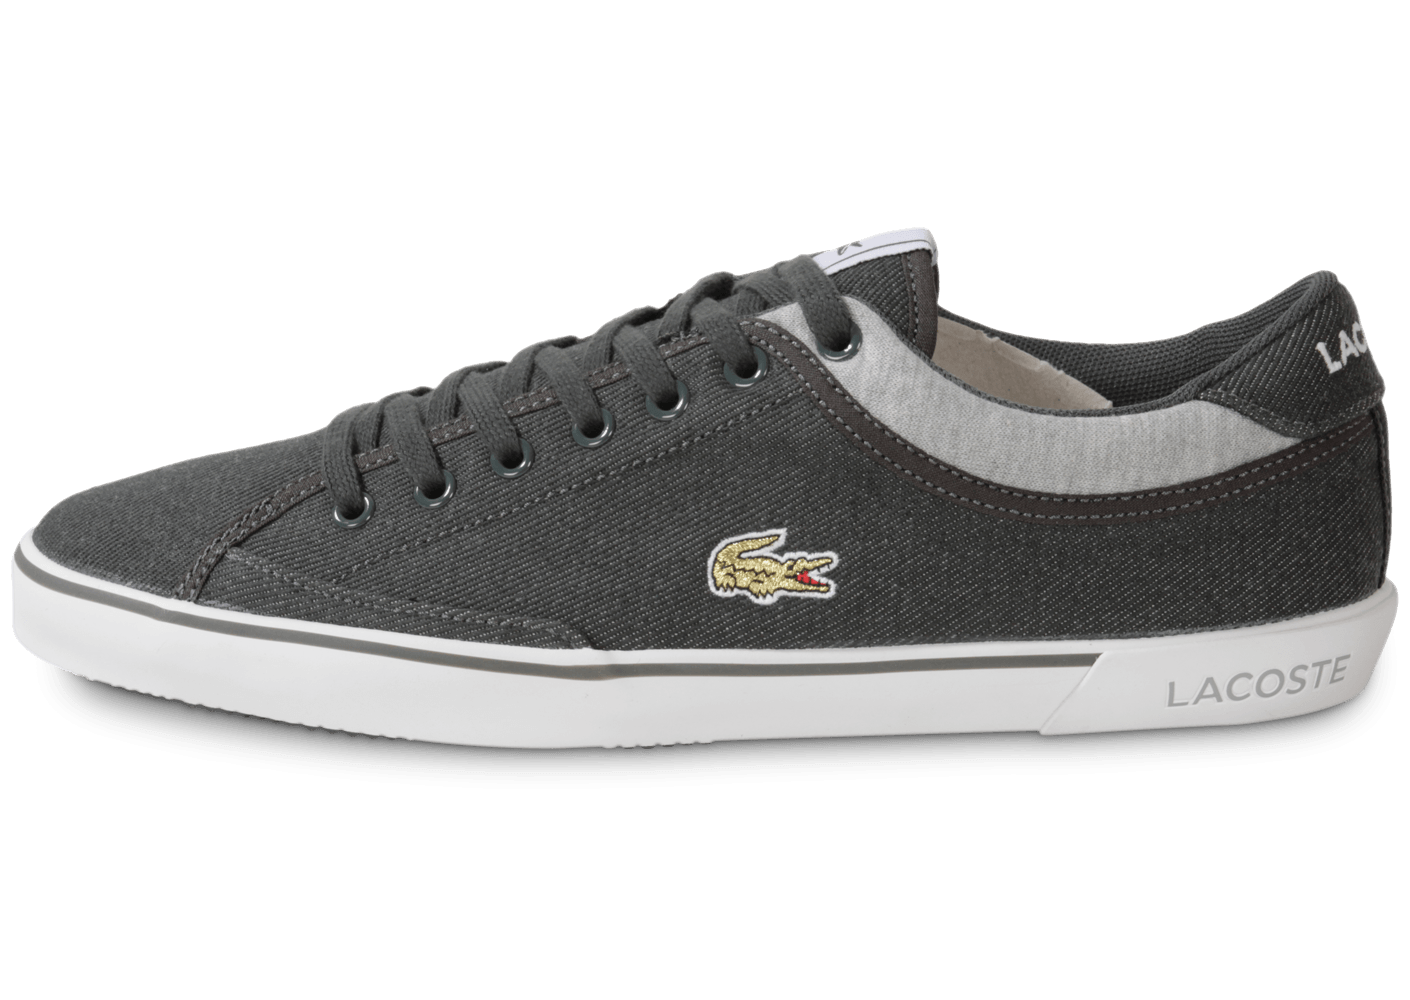 Chaussure Homme Beige Chaussures Homme Lacoste